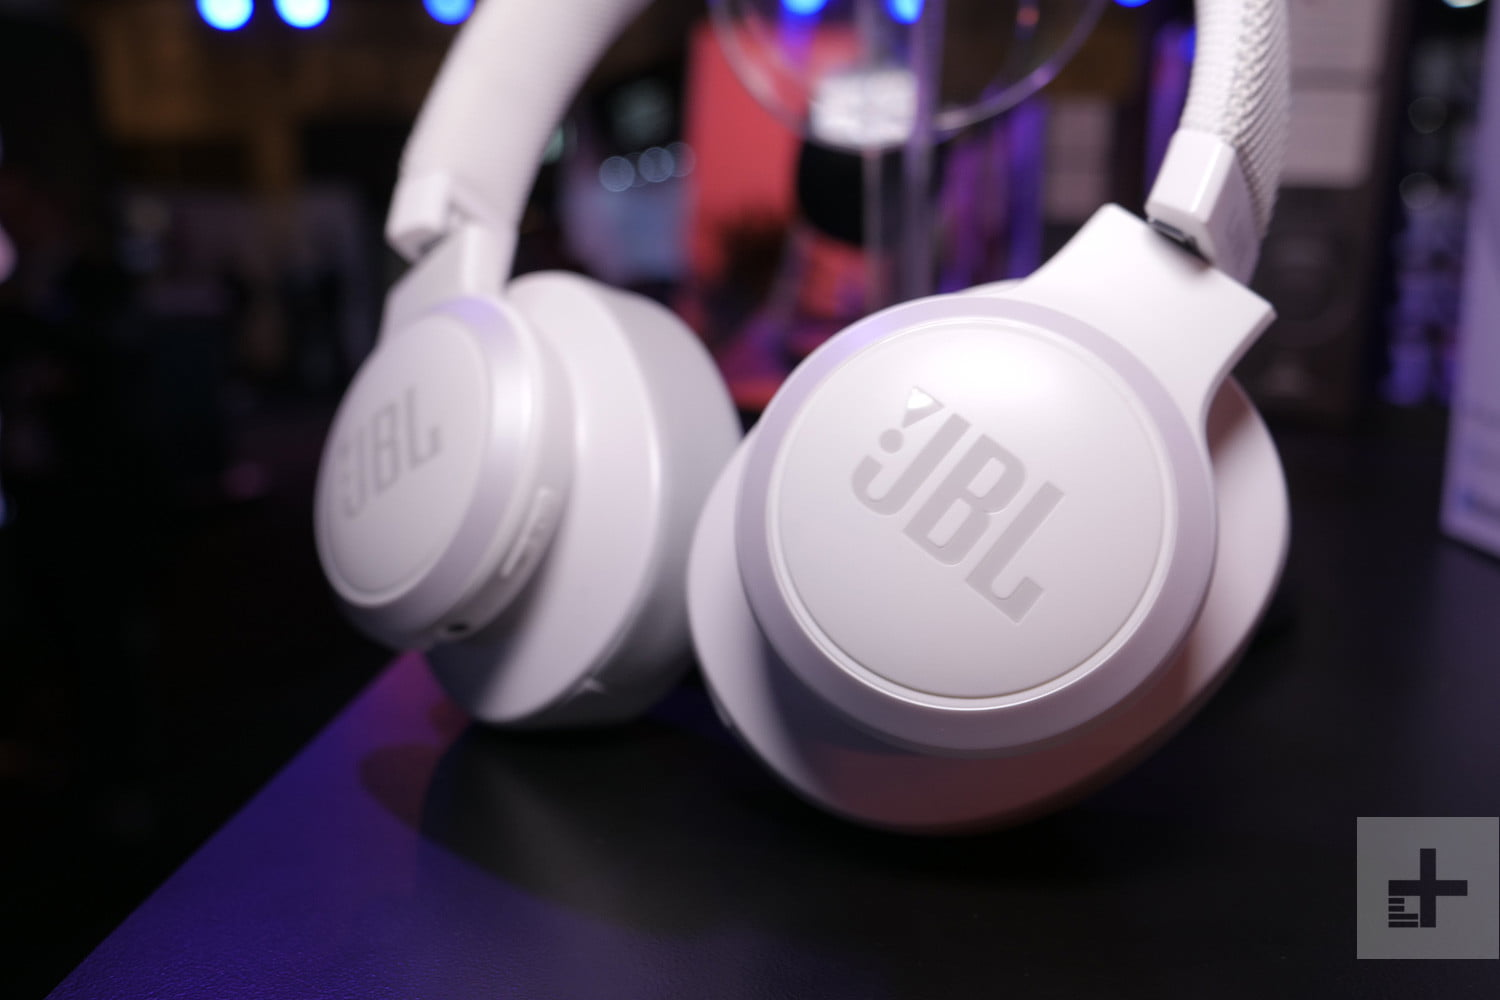 Sale Cuts Up to $200 Off JBL Headphones and Bluetooth Speakers